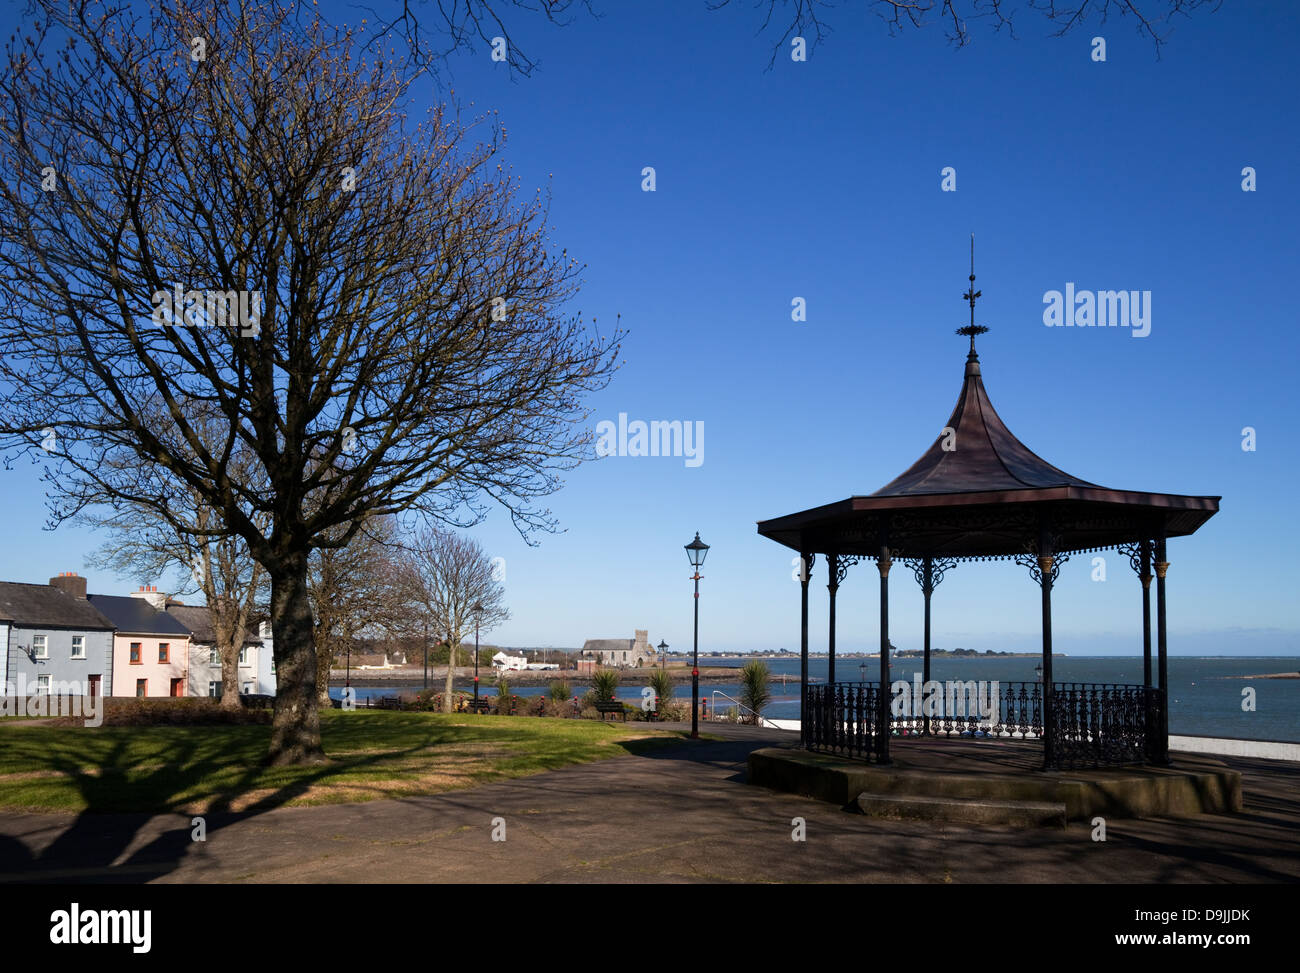 The VIctorian Band Stand made in 1897, at the Lookout, Overlooking Abbeyside and Dungarvan Bay, County Waterford, - Stock Image